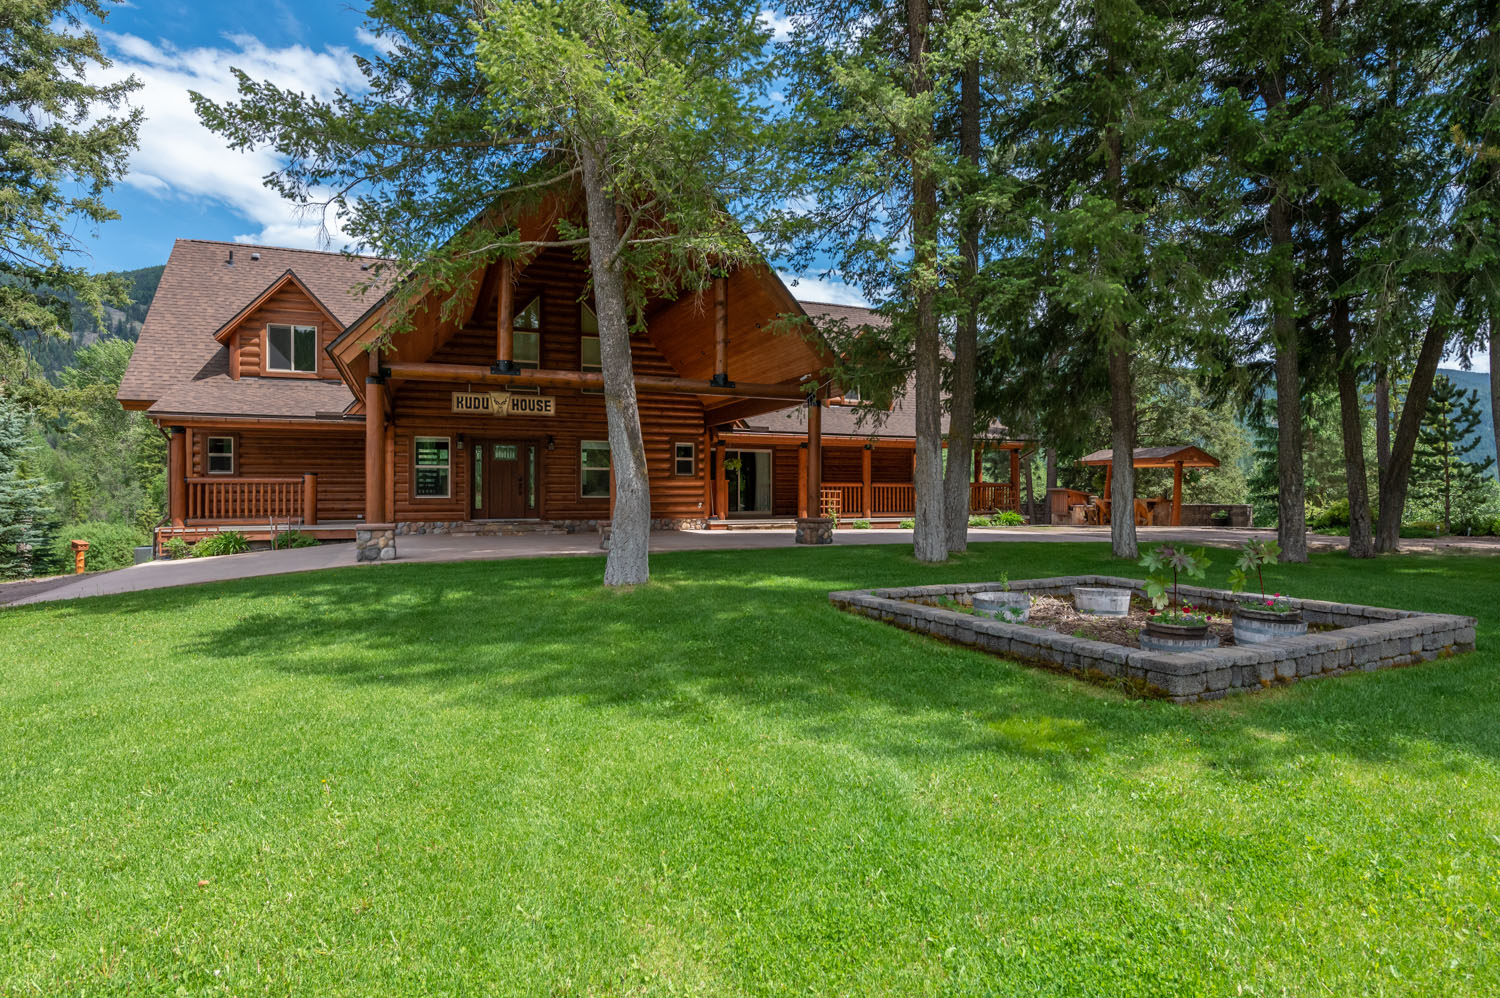 Willow springs ranch 47